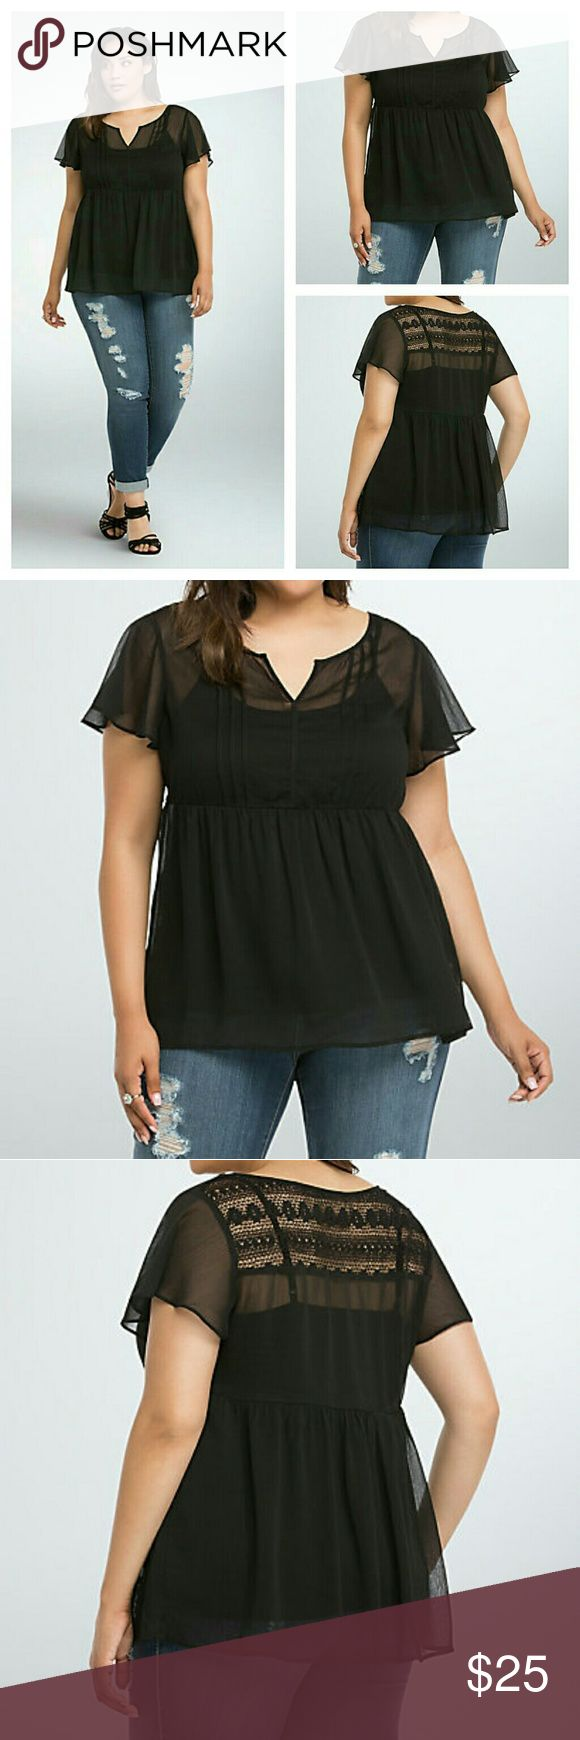 Torrid Chiffon Lace Inset Top shirt sheer 0x L 12 *Cami undershirt not included*   With this top, black is no longer just for Friday. The black chiffon is sheer sexiness, and fly-away-worthy with flutter sleeves and a billowy empire cut. A lace inset trimming the back gives you another excuse to show off some skin.  ?  Polyester; lace: cotton/rayonHand wash cold, dry flatImported plus size top torrid Tops